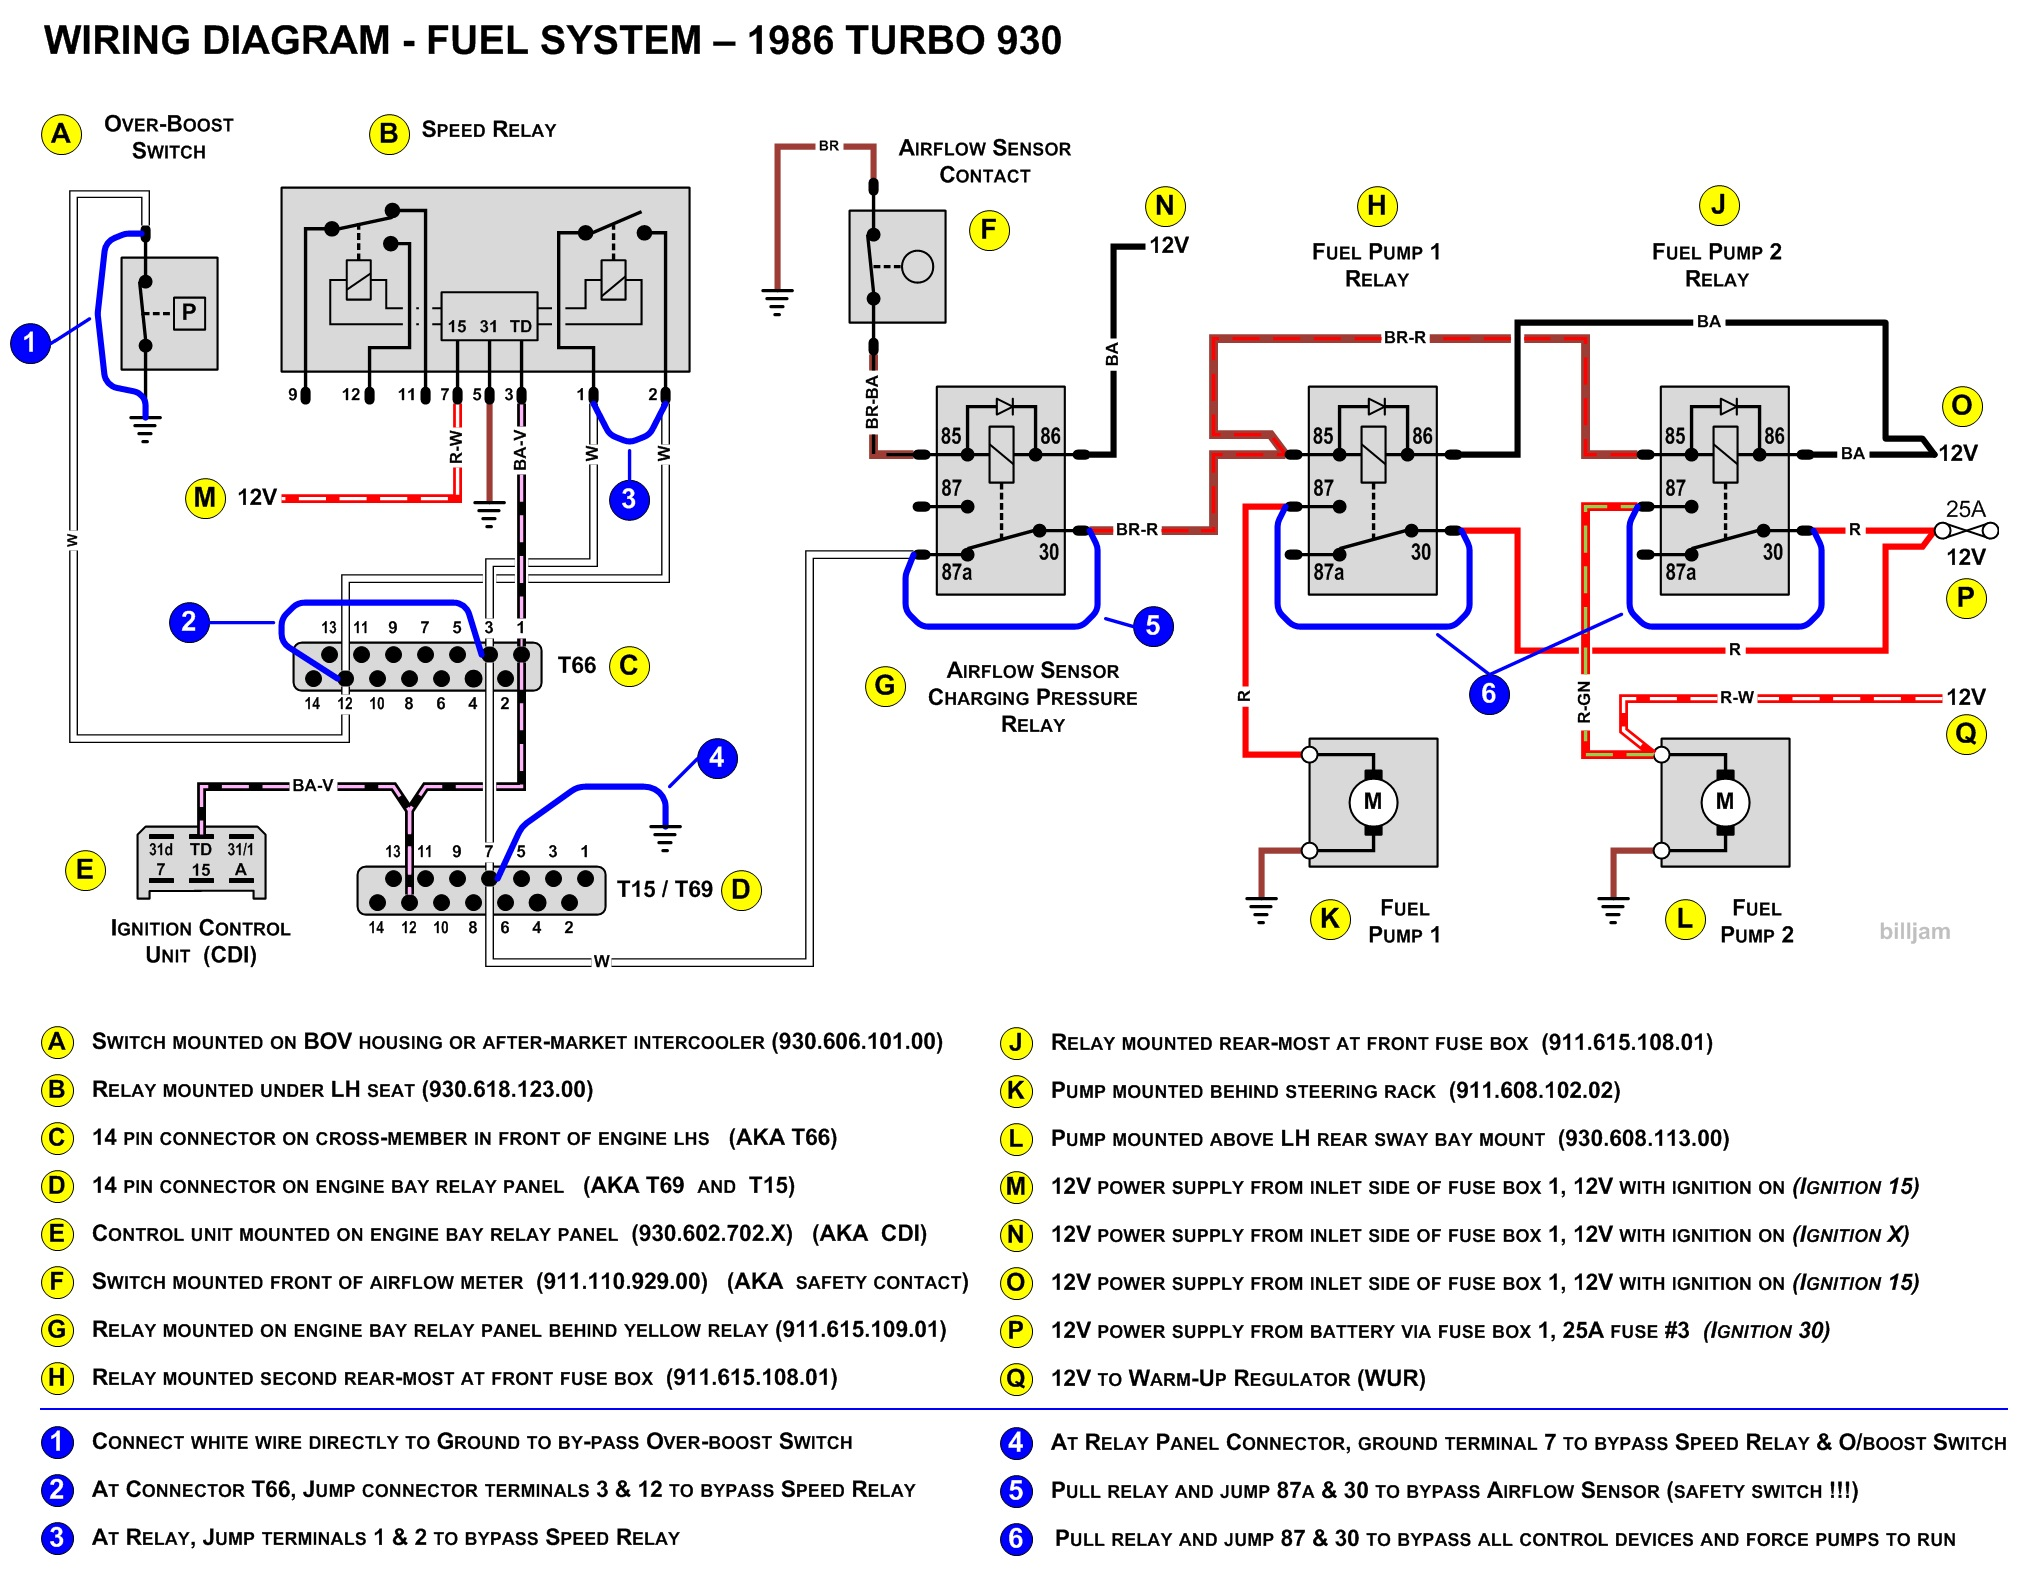 86 porsche 930 fuel system wiring diagram jumpers made a fuse box label for my 88 page 3 pelican parts technical bbs fuse box label at couponss.co